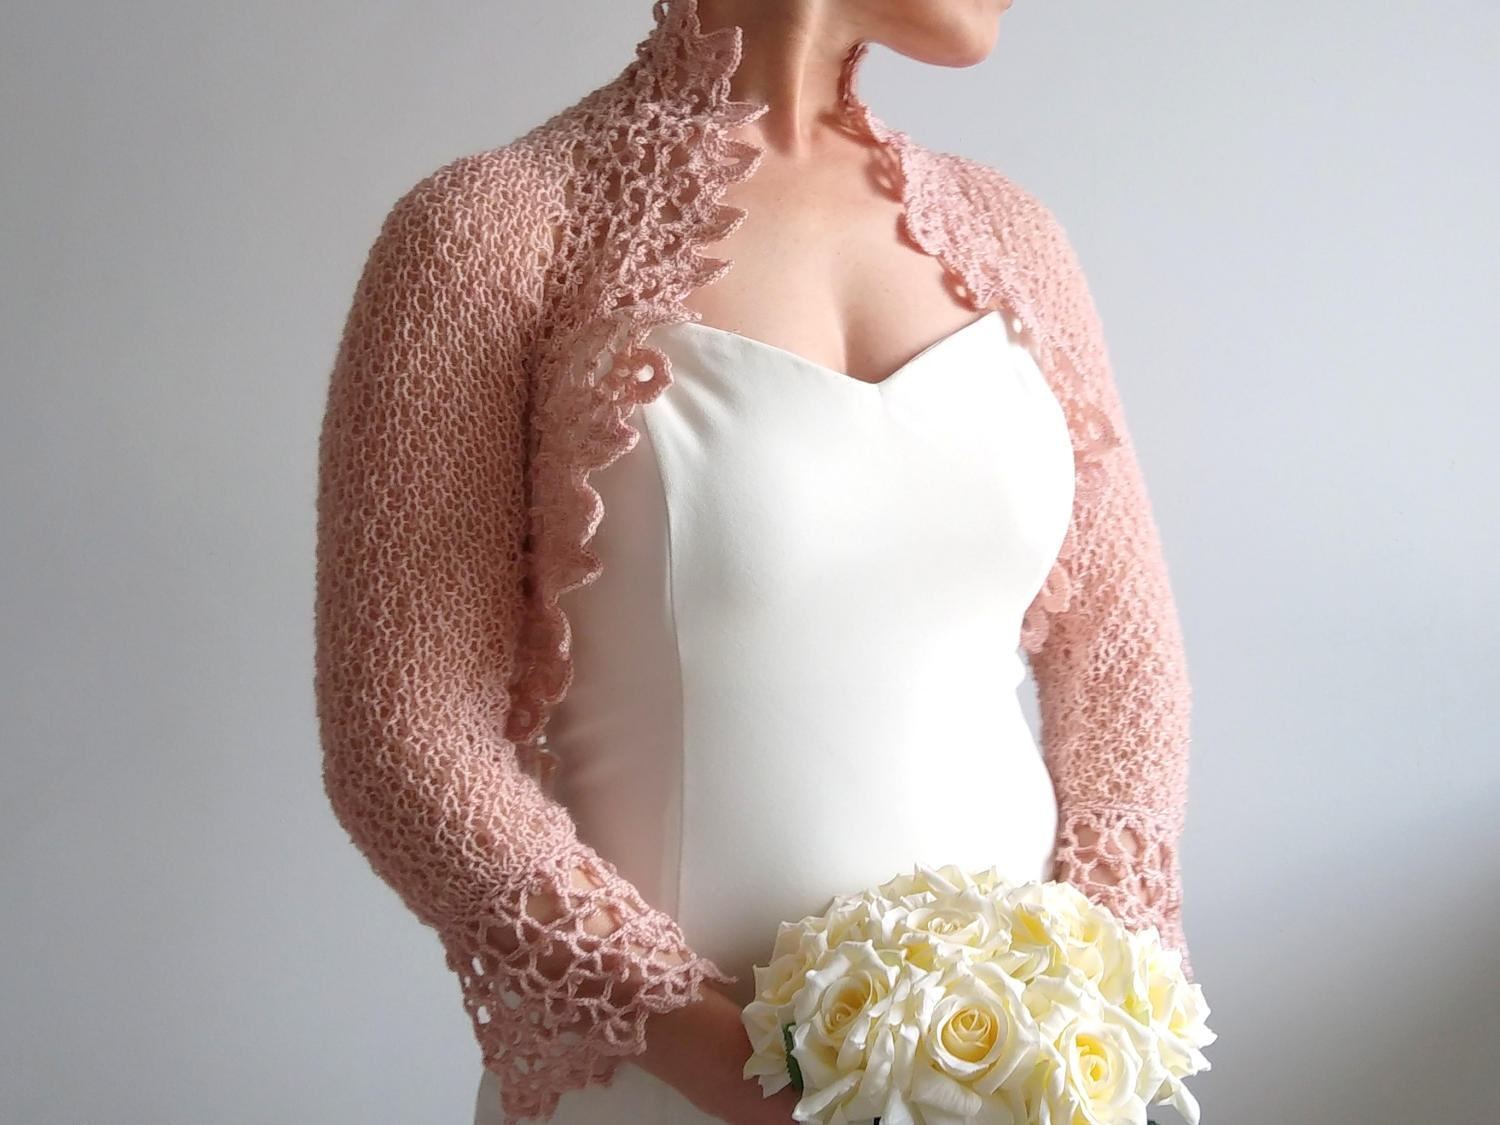 Crochet bolero shrug rose bolero bridal jacket wedding